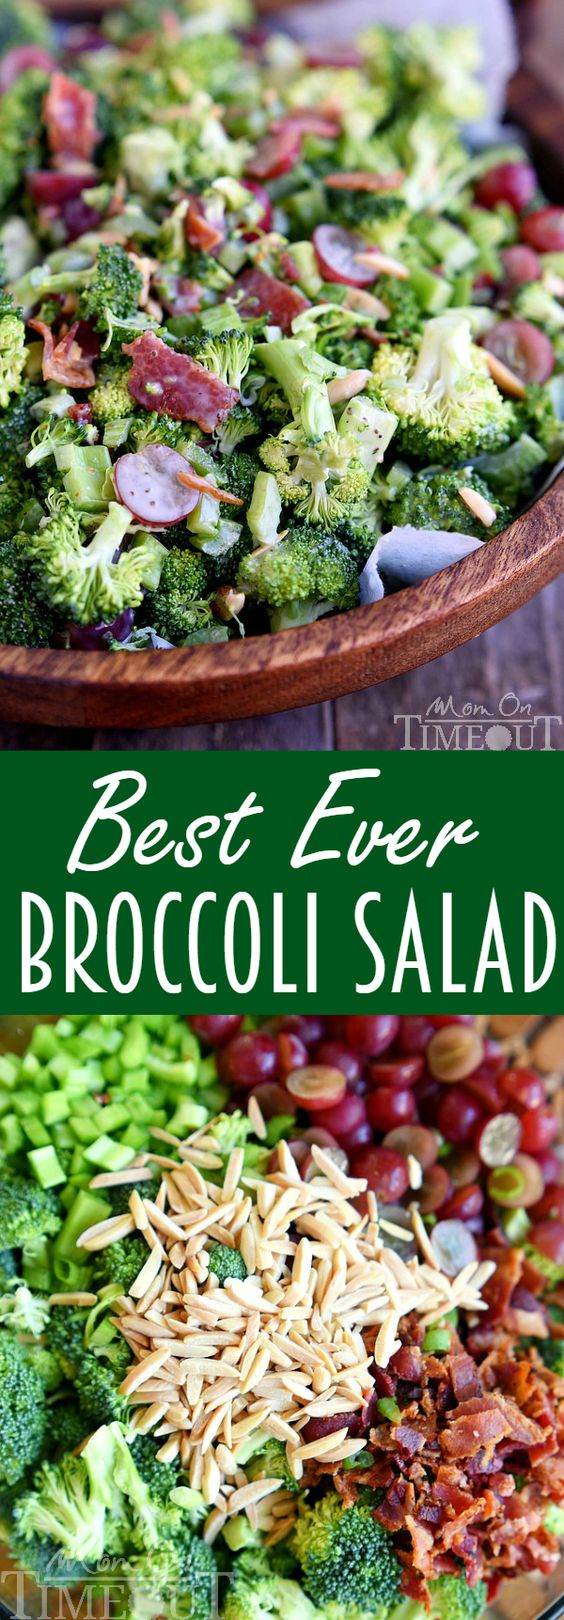 Most Pinned Salad Recipe on Pinterest 11